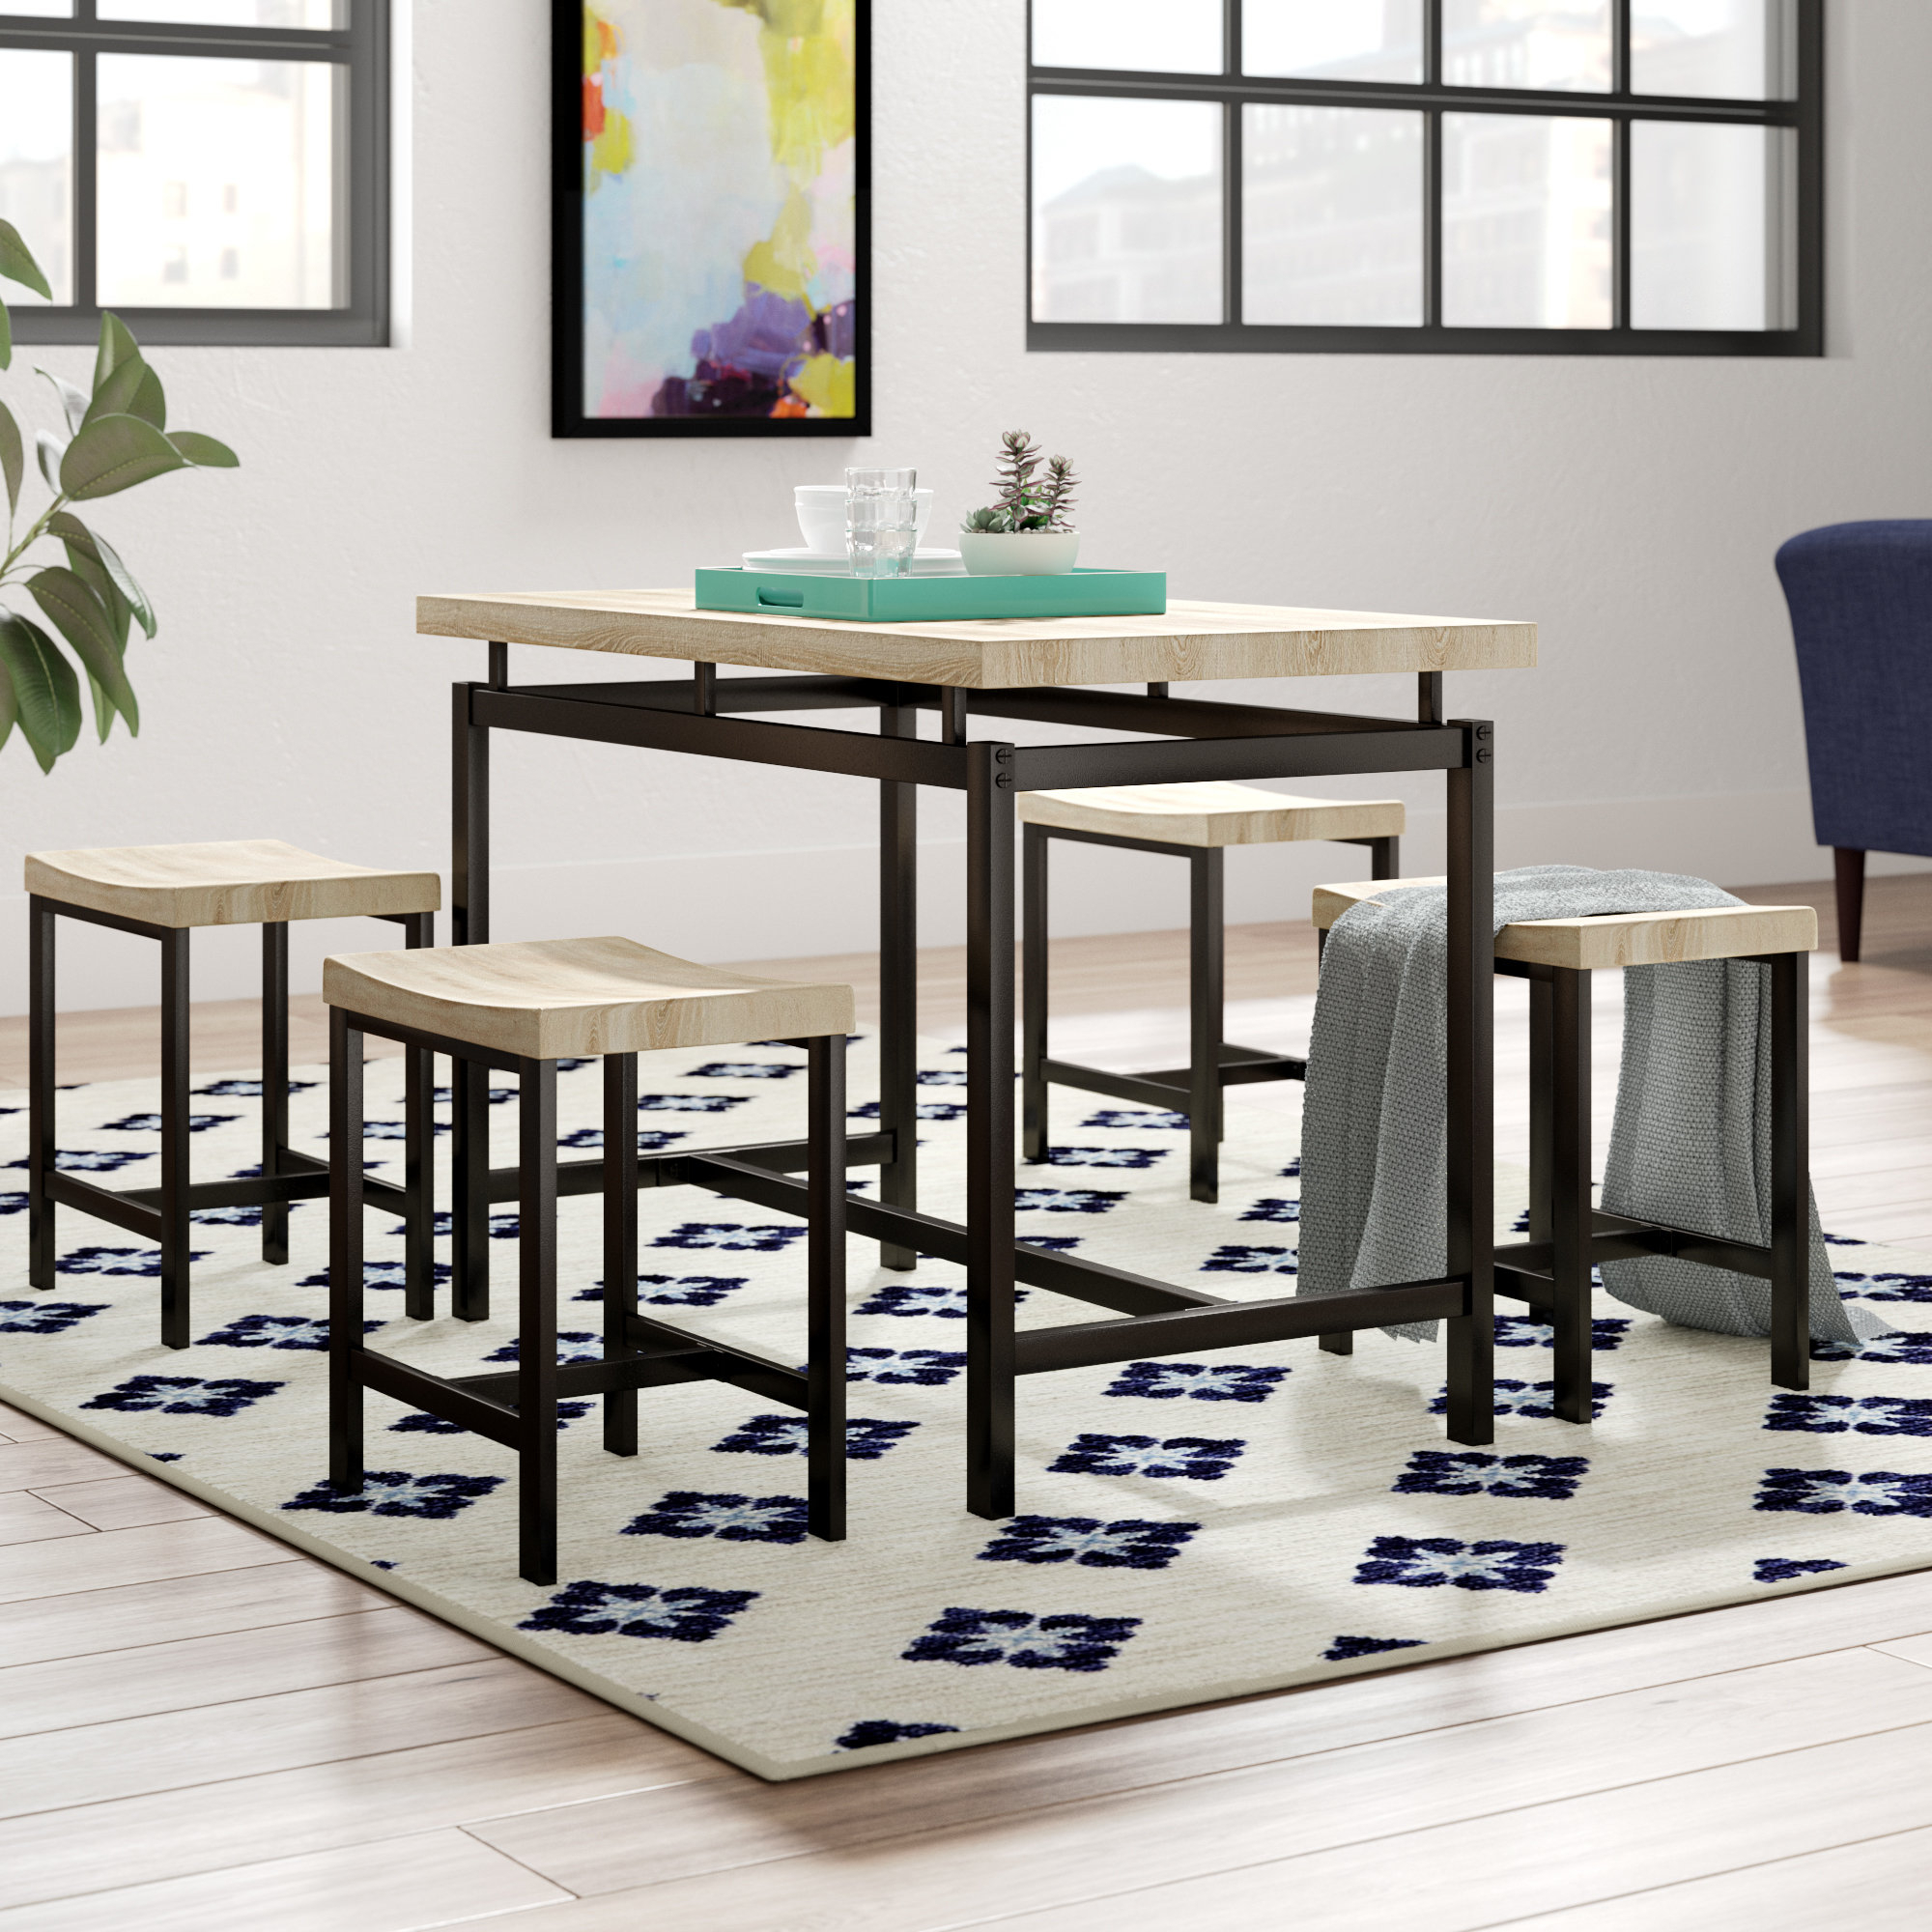 Bryson 5 Piece Dining Set Regarding Trendy Casiano 5 Piece Dining Sets (Gallery 15 of 20)